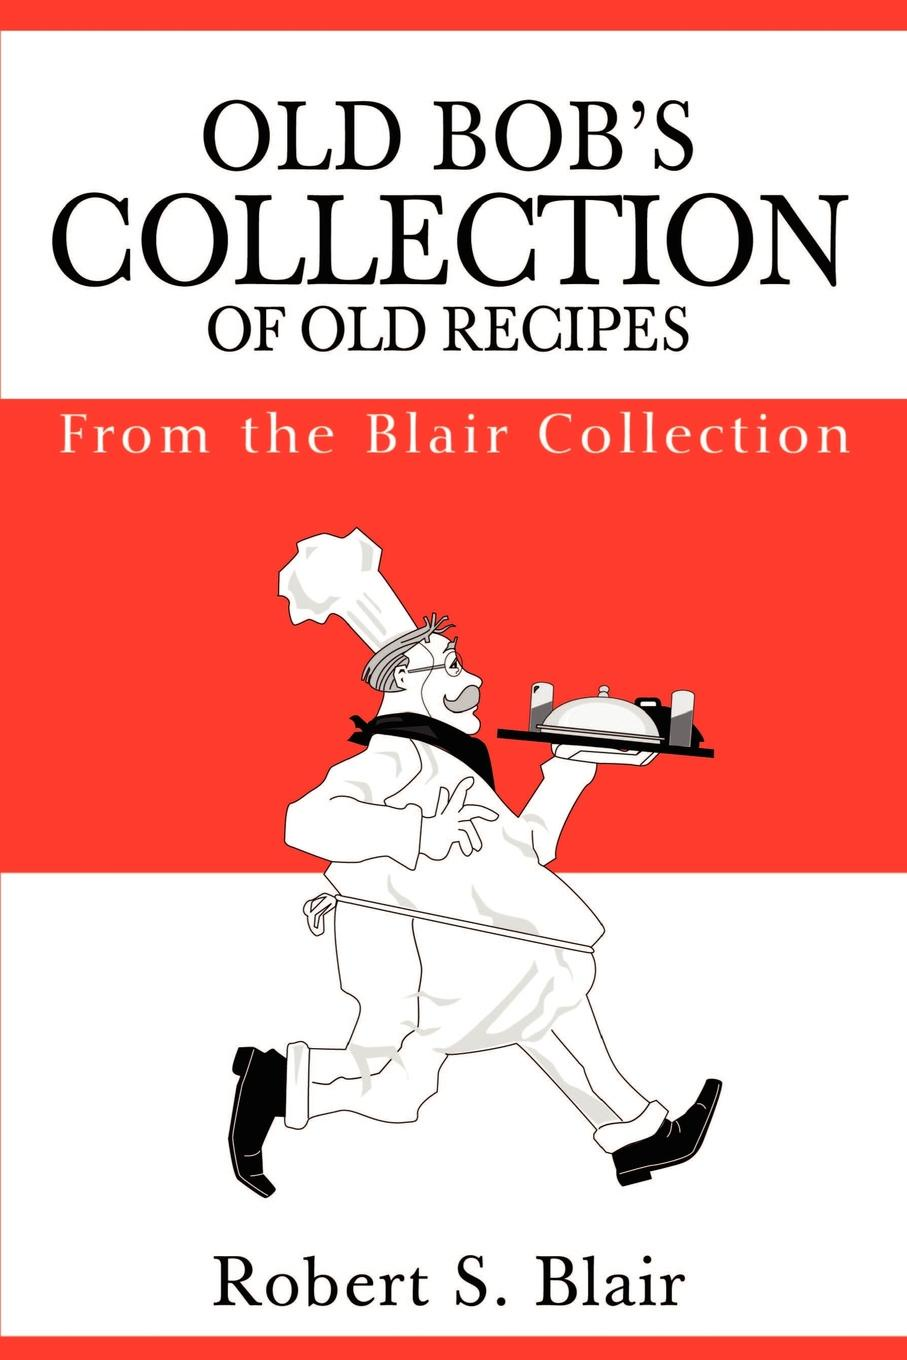 купить Robert S Blair Old Bob's Collection of Old Recipes. From the Blair Collection онлайн